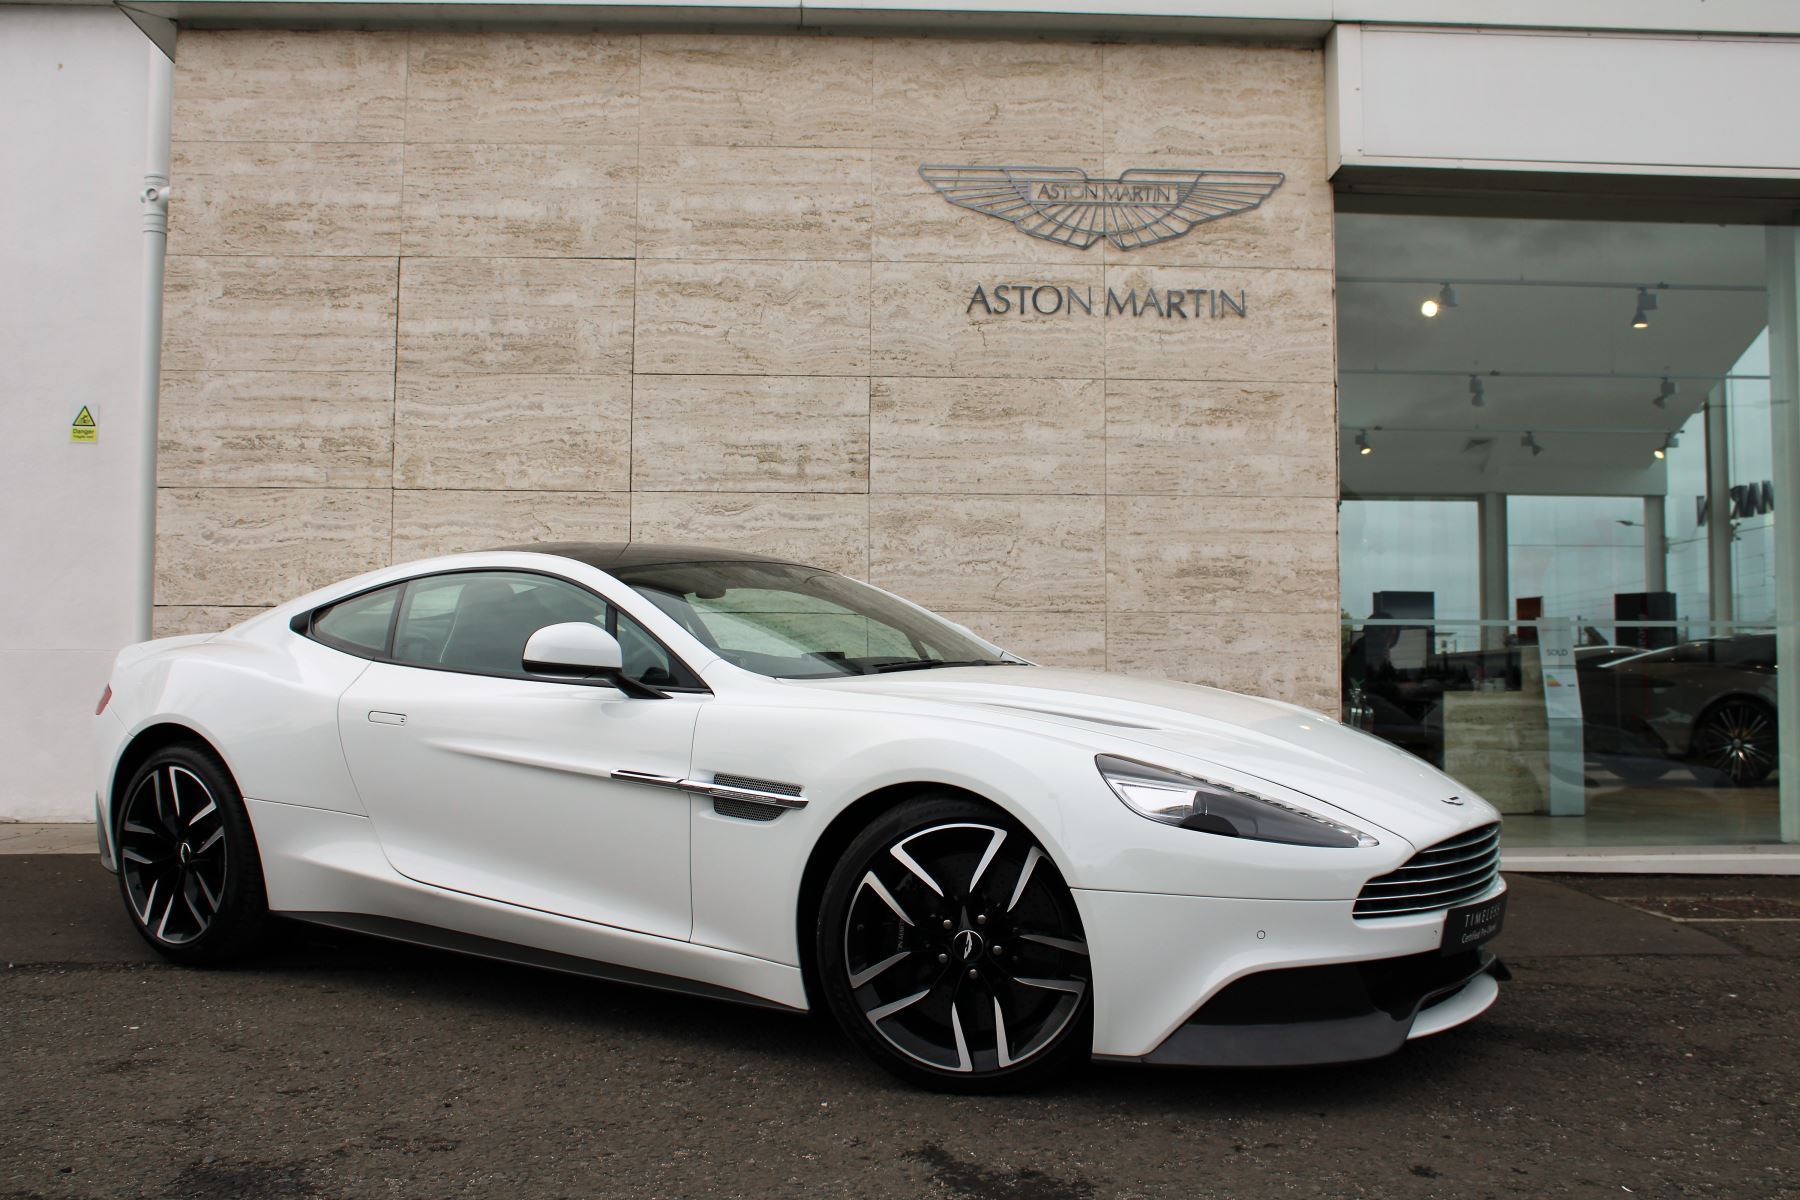 Aston Martin Vanquish V12 [568] 2+2 2dr Touchtronic image 1